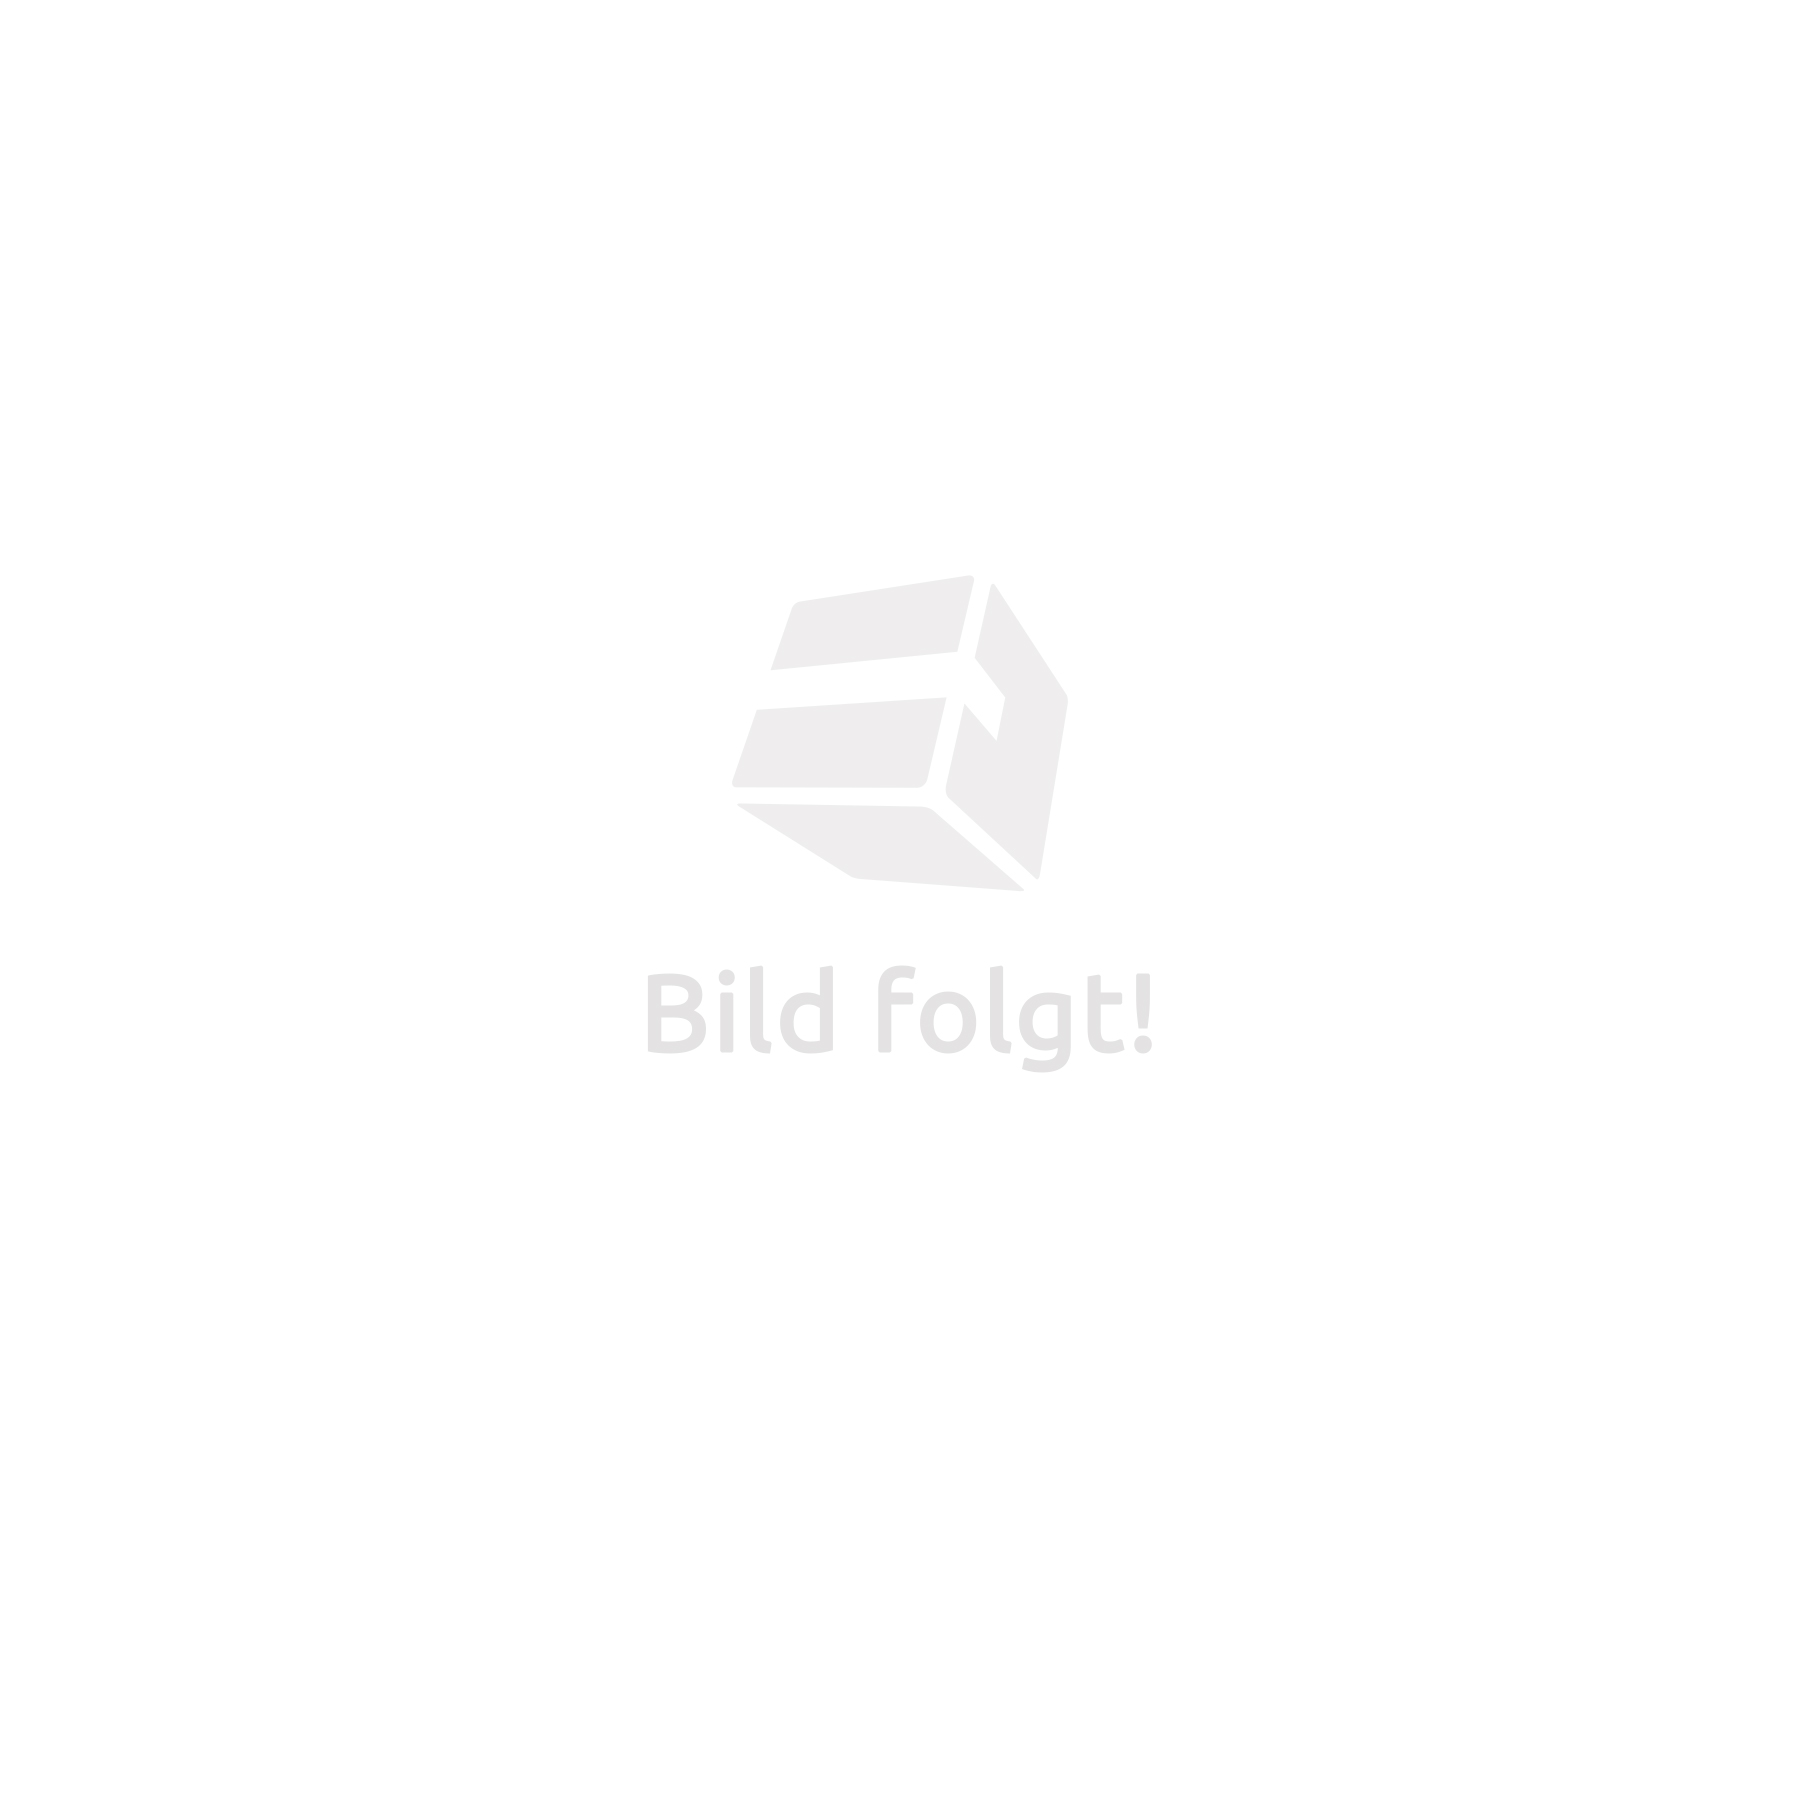 Shower panel with 6 massage jets